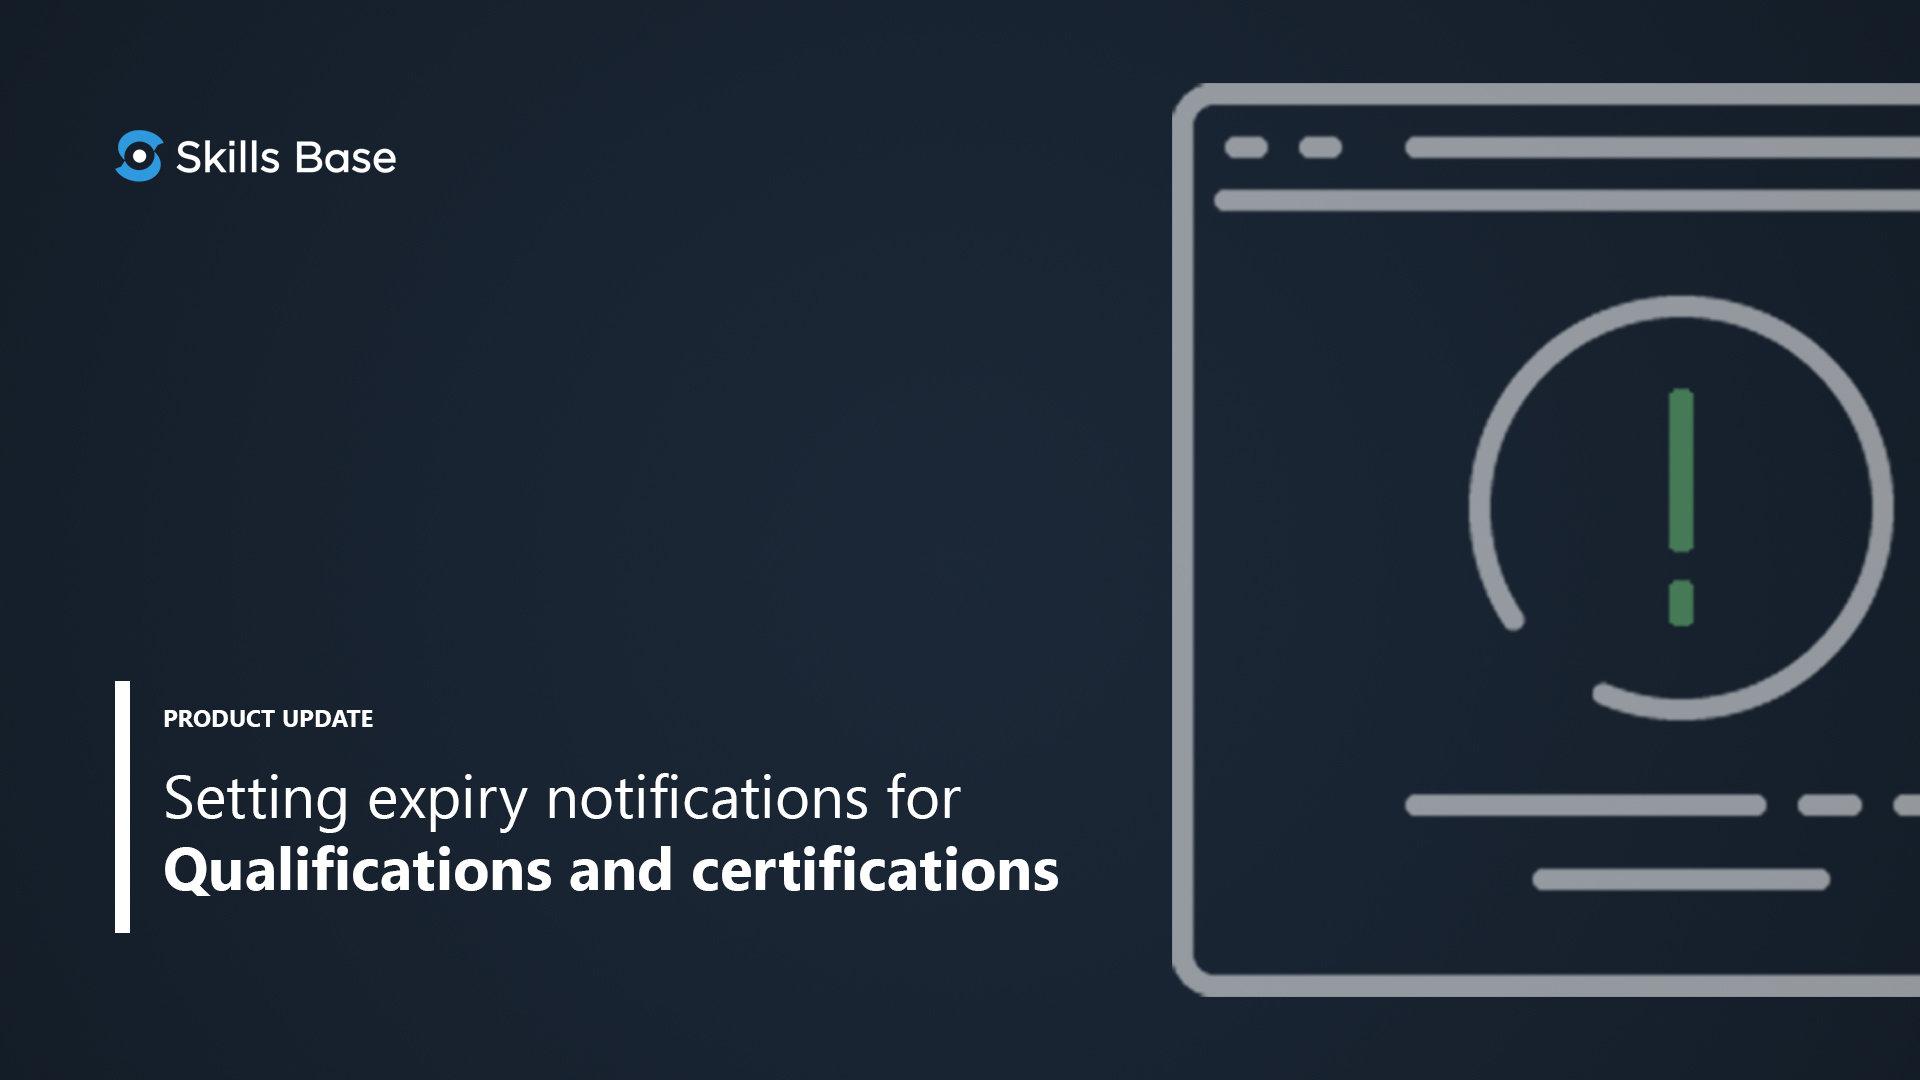 Setting expiry notifications for Qualifications and certifications